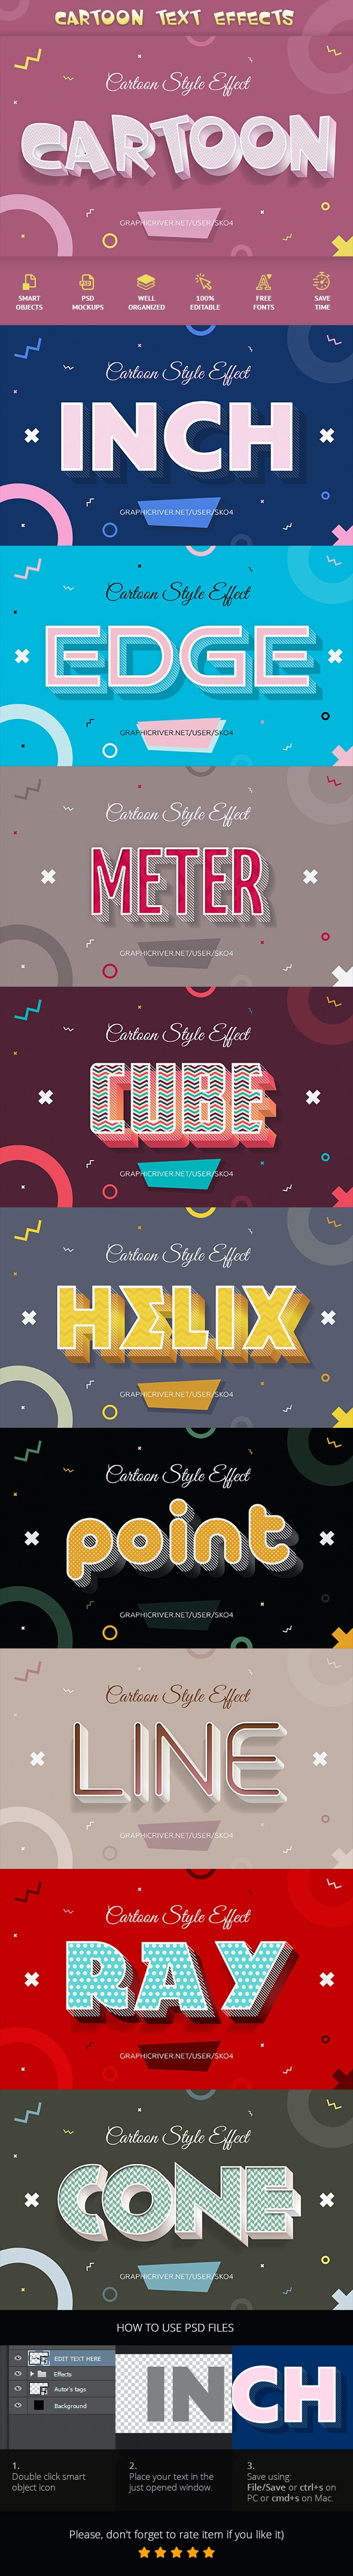 Cartoon Text Effects - Text Effects Actions